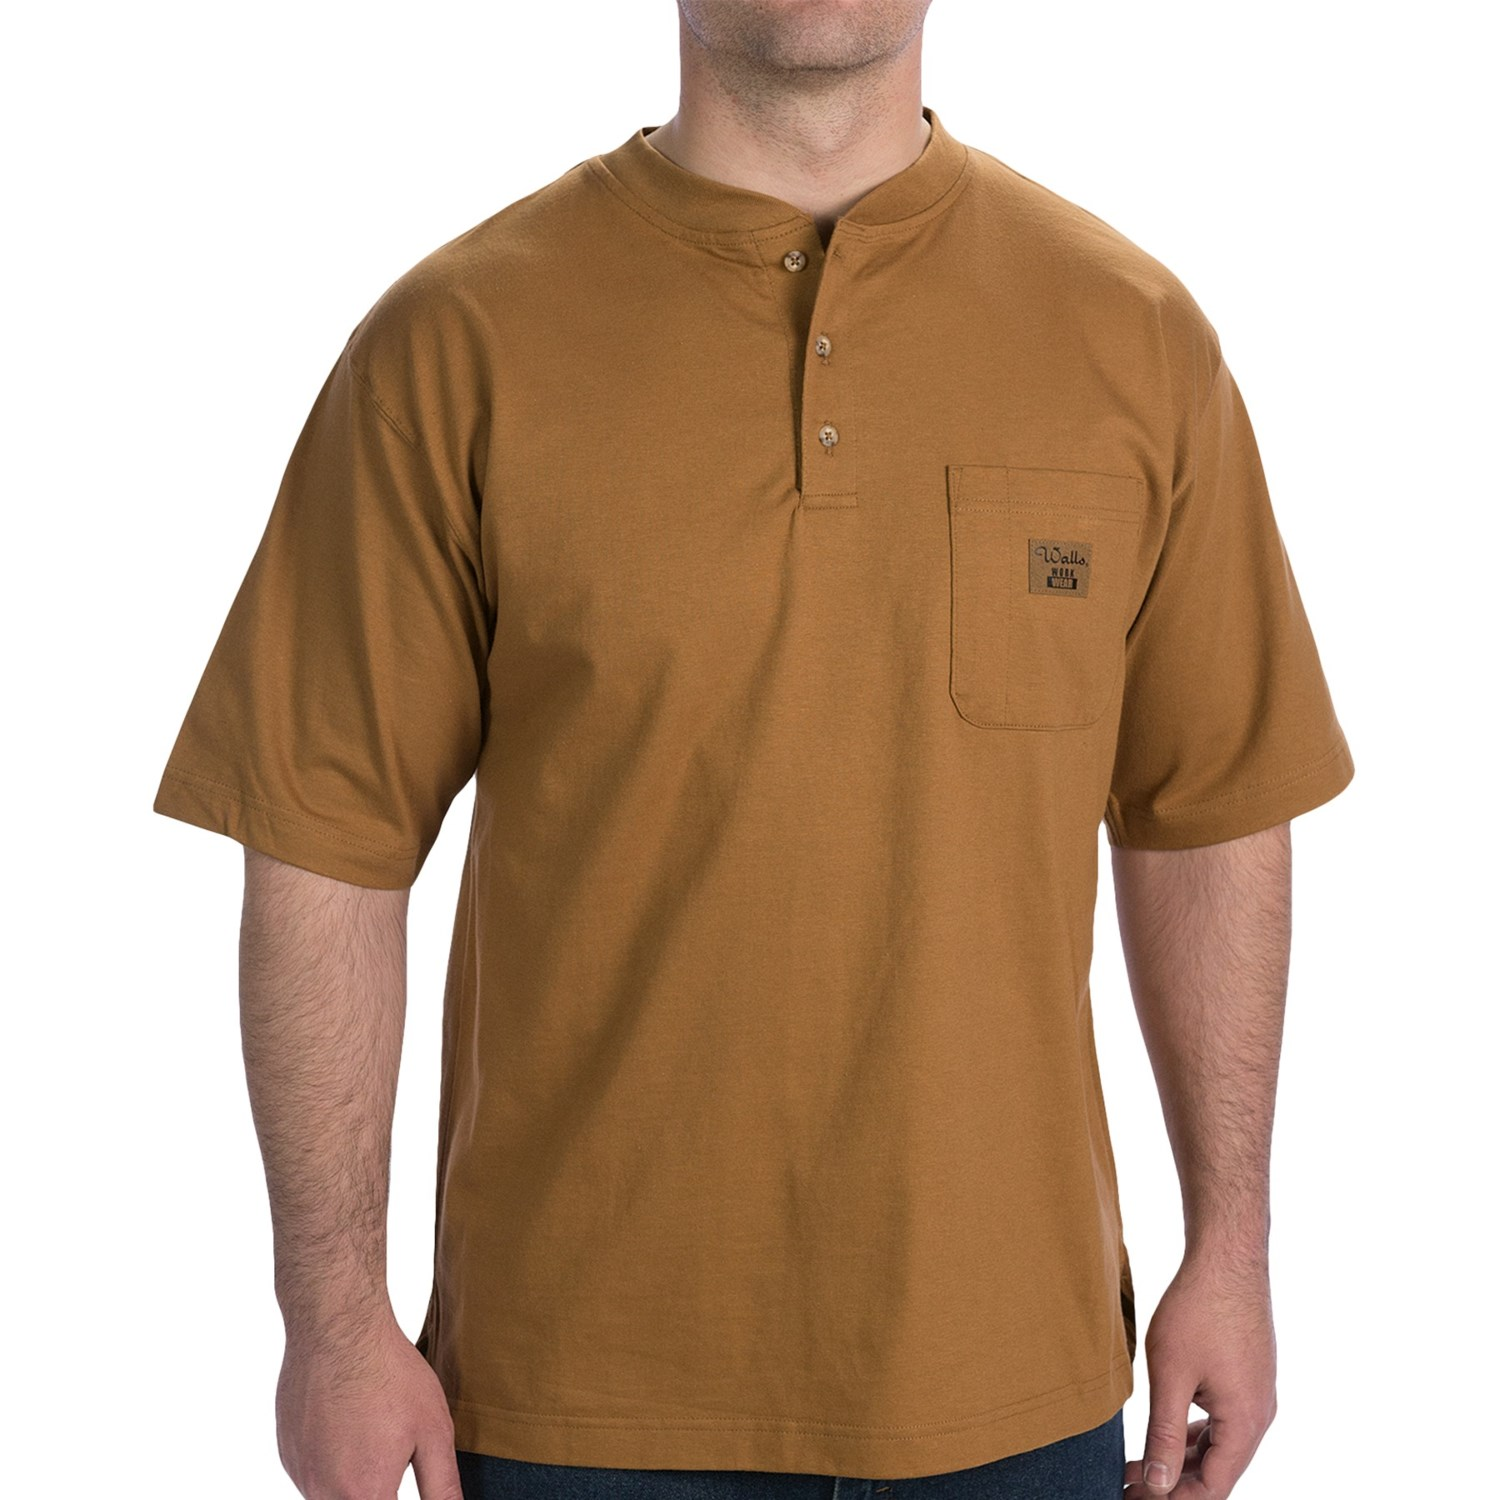 Walls workwear henley work shirt for men 7316a save 61 for Short sleeved shirts for men